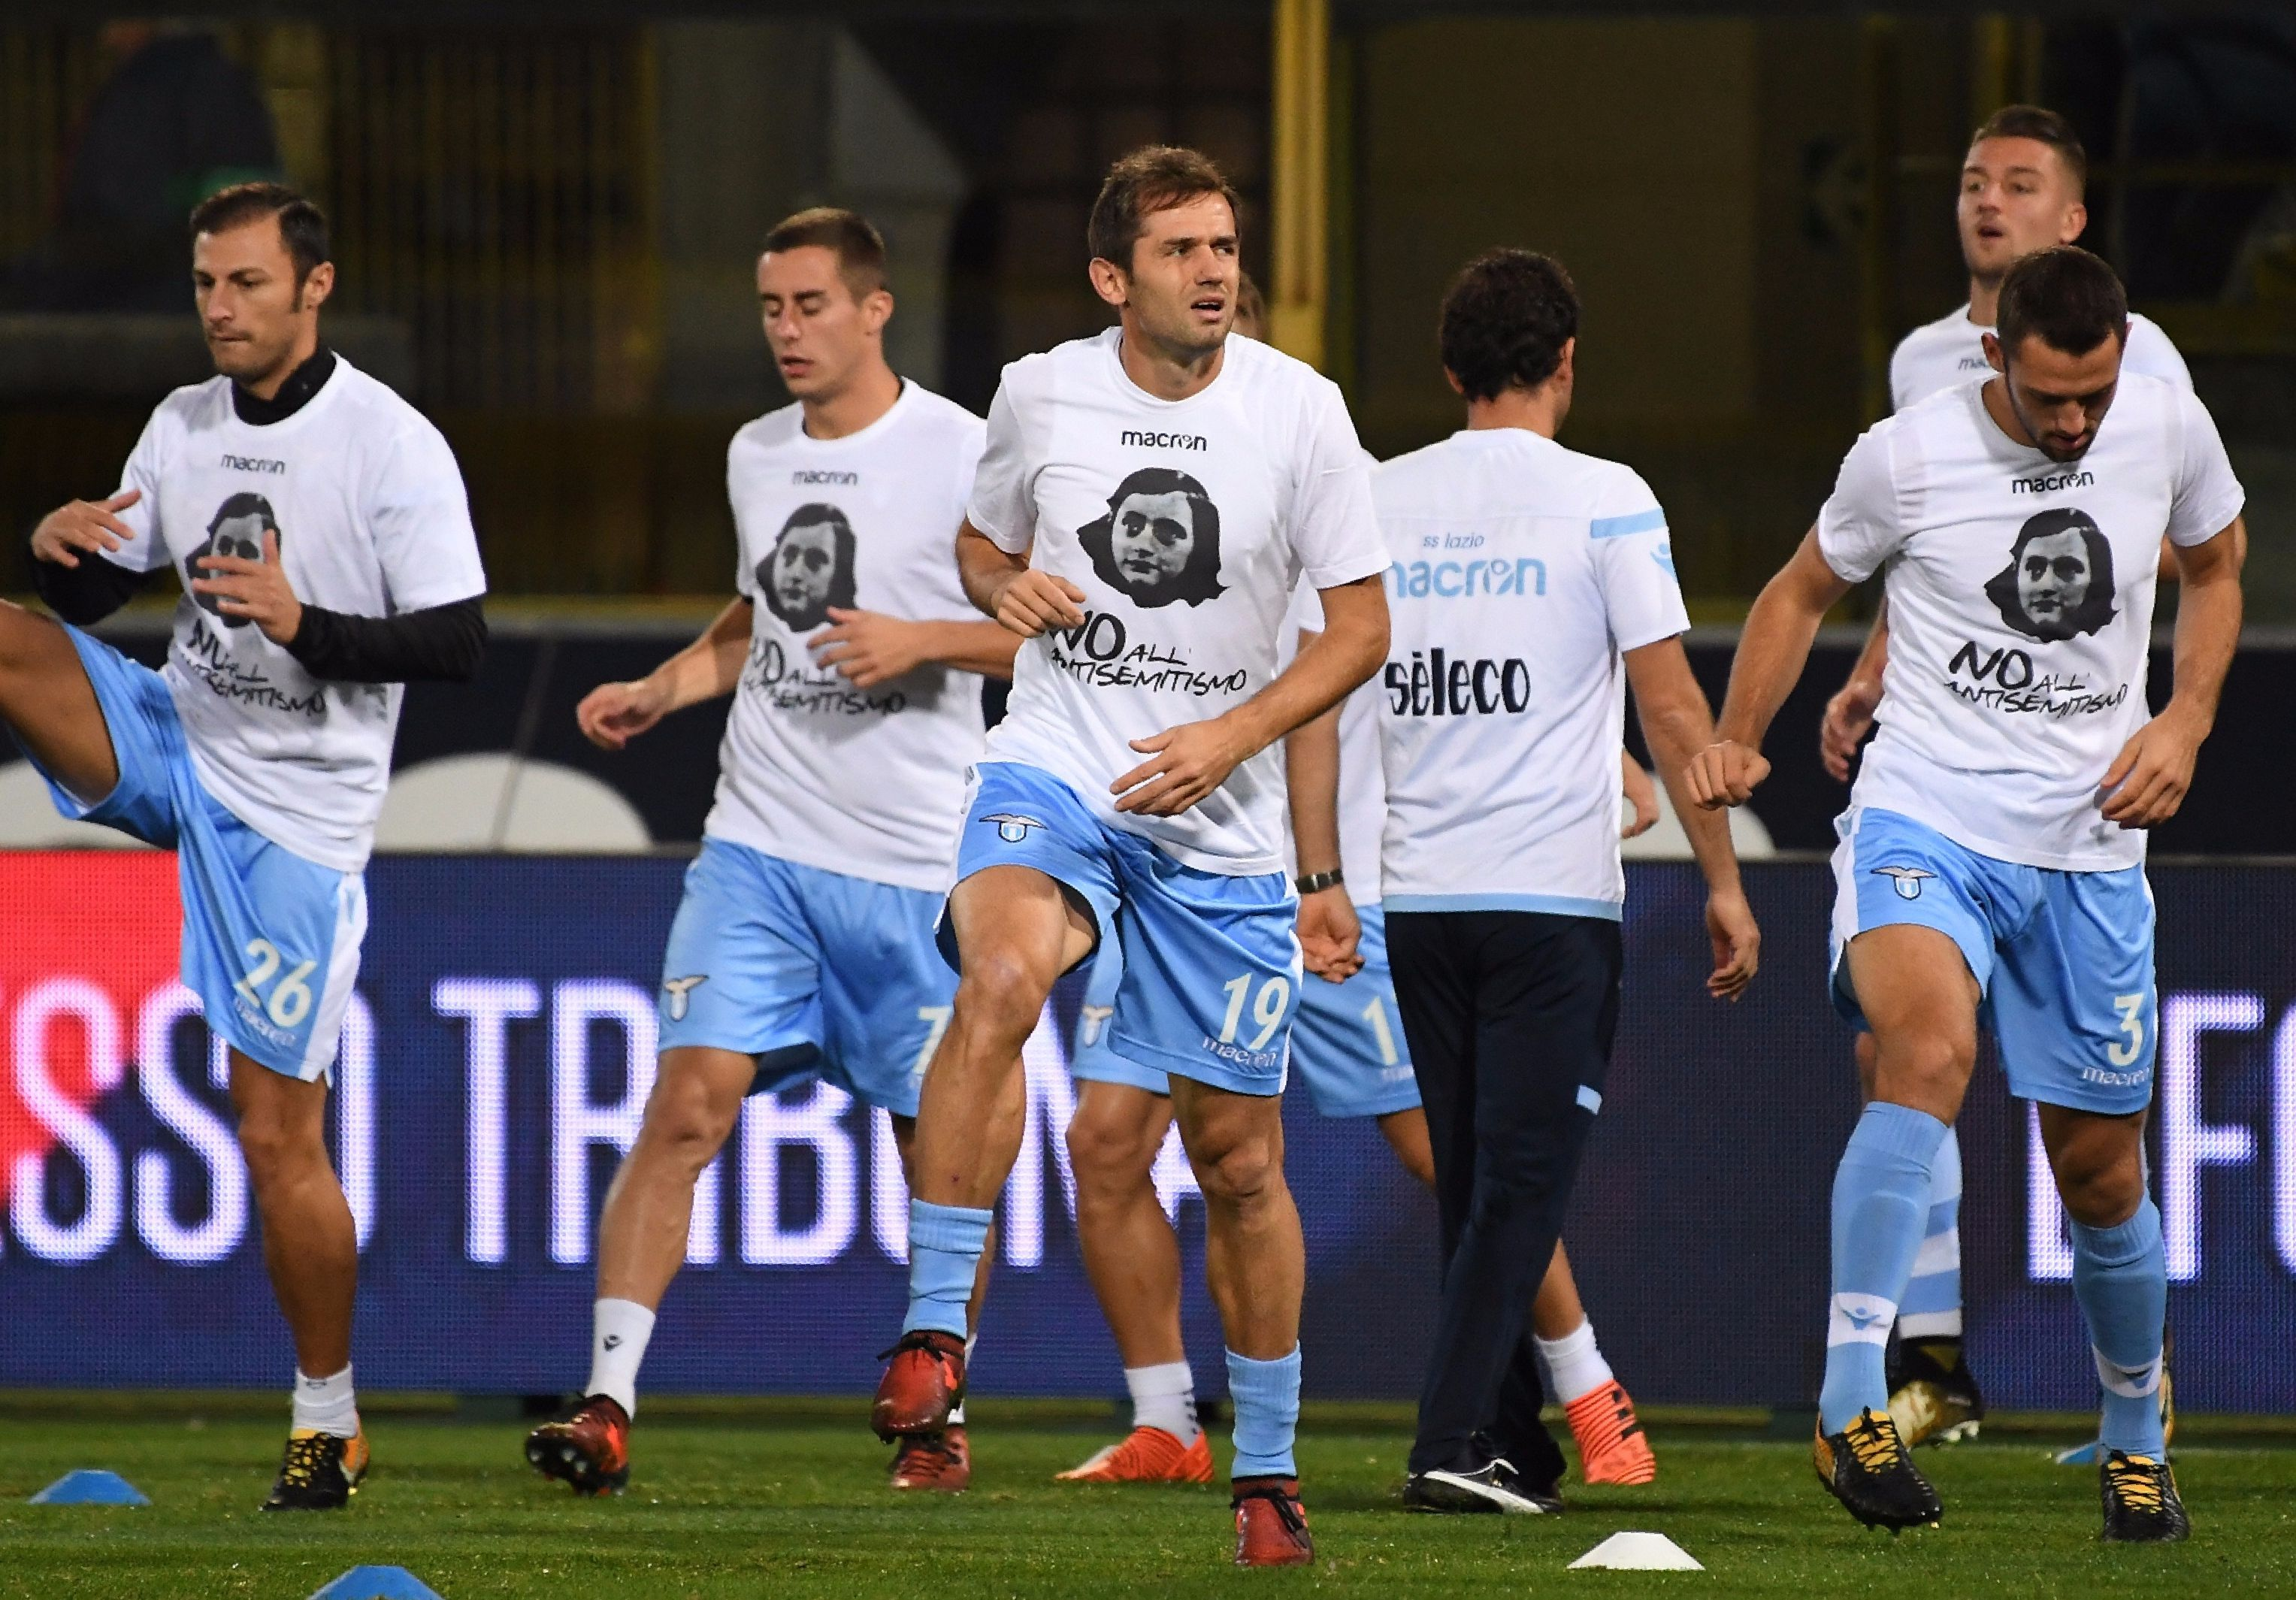 Serie A anti-Semitism initiative marred by some Lazio and other fans